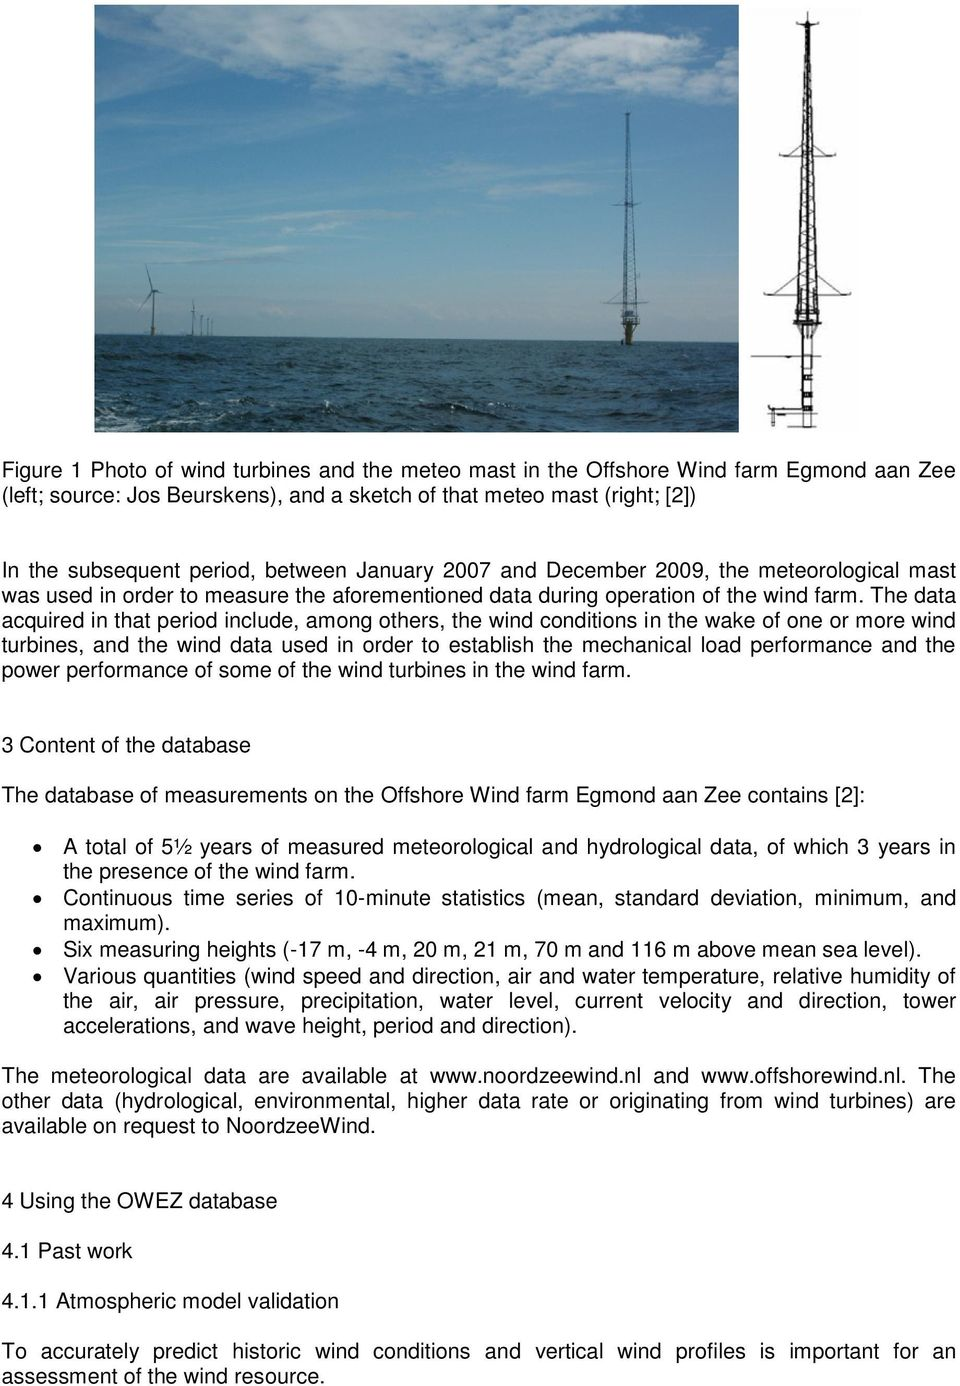 The data acquired in that period include, among others, the wind conditions in the wake of one or more wind turbines, and the wind data used in order to establish the mechanical load performance and